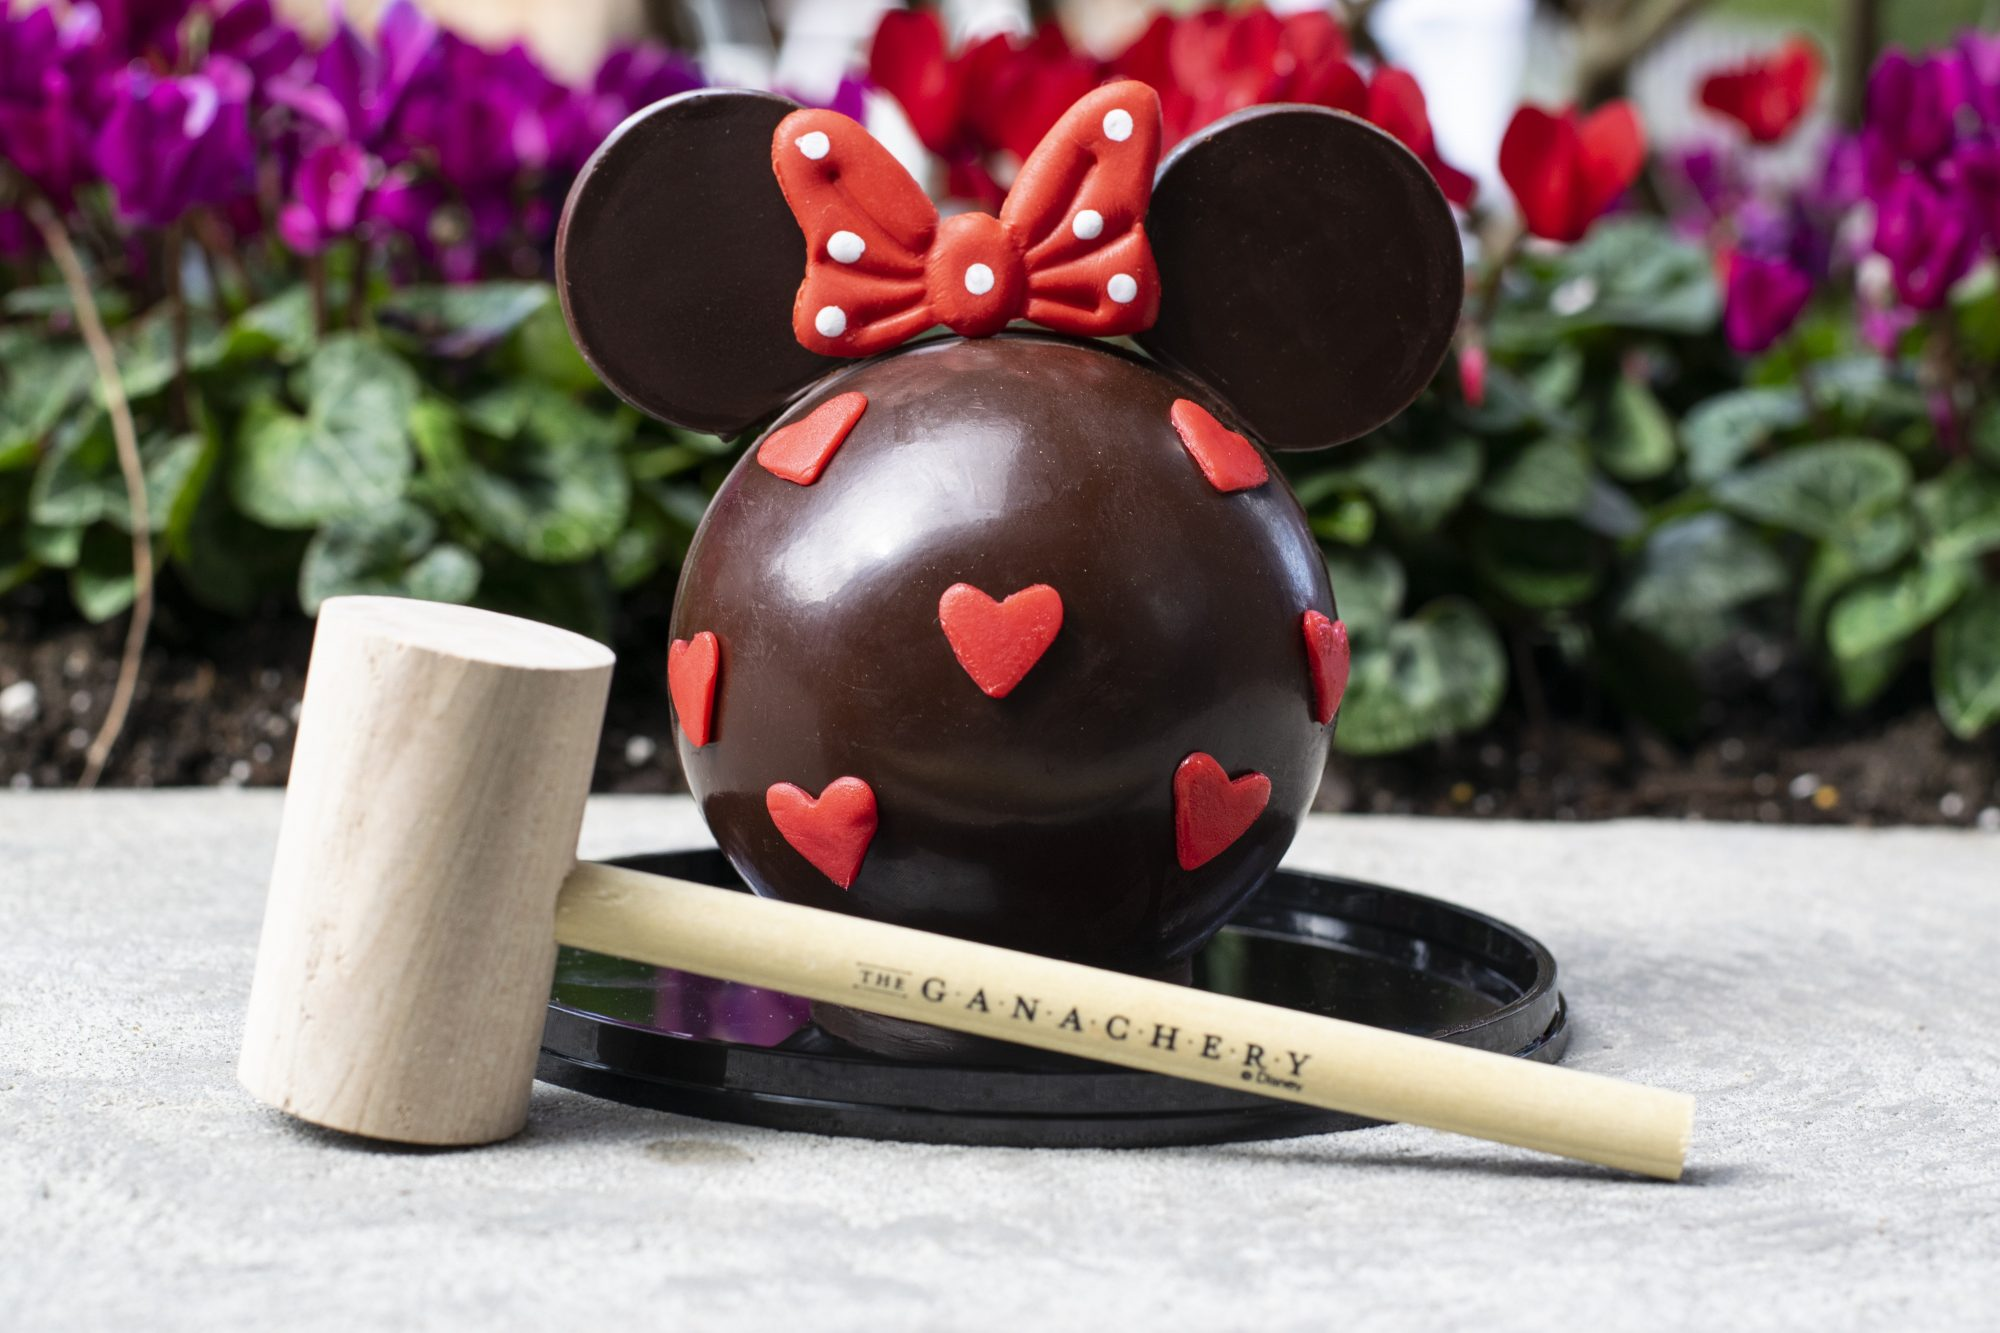 Minnie Mouse hot chocolate bomb and wooden mallet